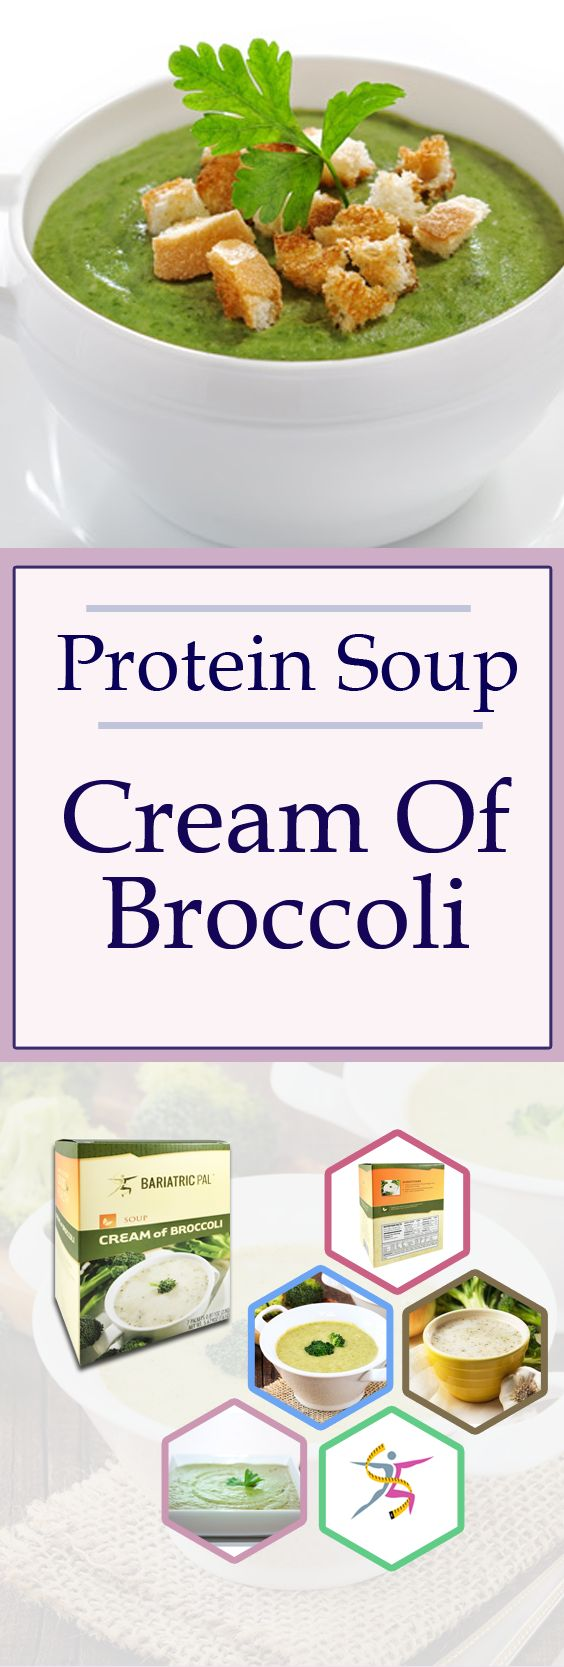 BariatricPal Protein Soup is your mealtime solution. Just add water and enjoy your instant high-protein soup. BariatricPal Protein Soup – Cream of Broccoli is a creamy comfort food without the extra fat and calories. Each bowl has only 80 calories and no fat! Made from real broccoli, it has 15 grams of protein. It can make you feel better pre-op and post-op while giving you the protein you need. 7 packets per box.